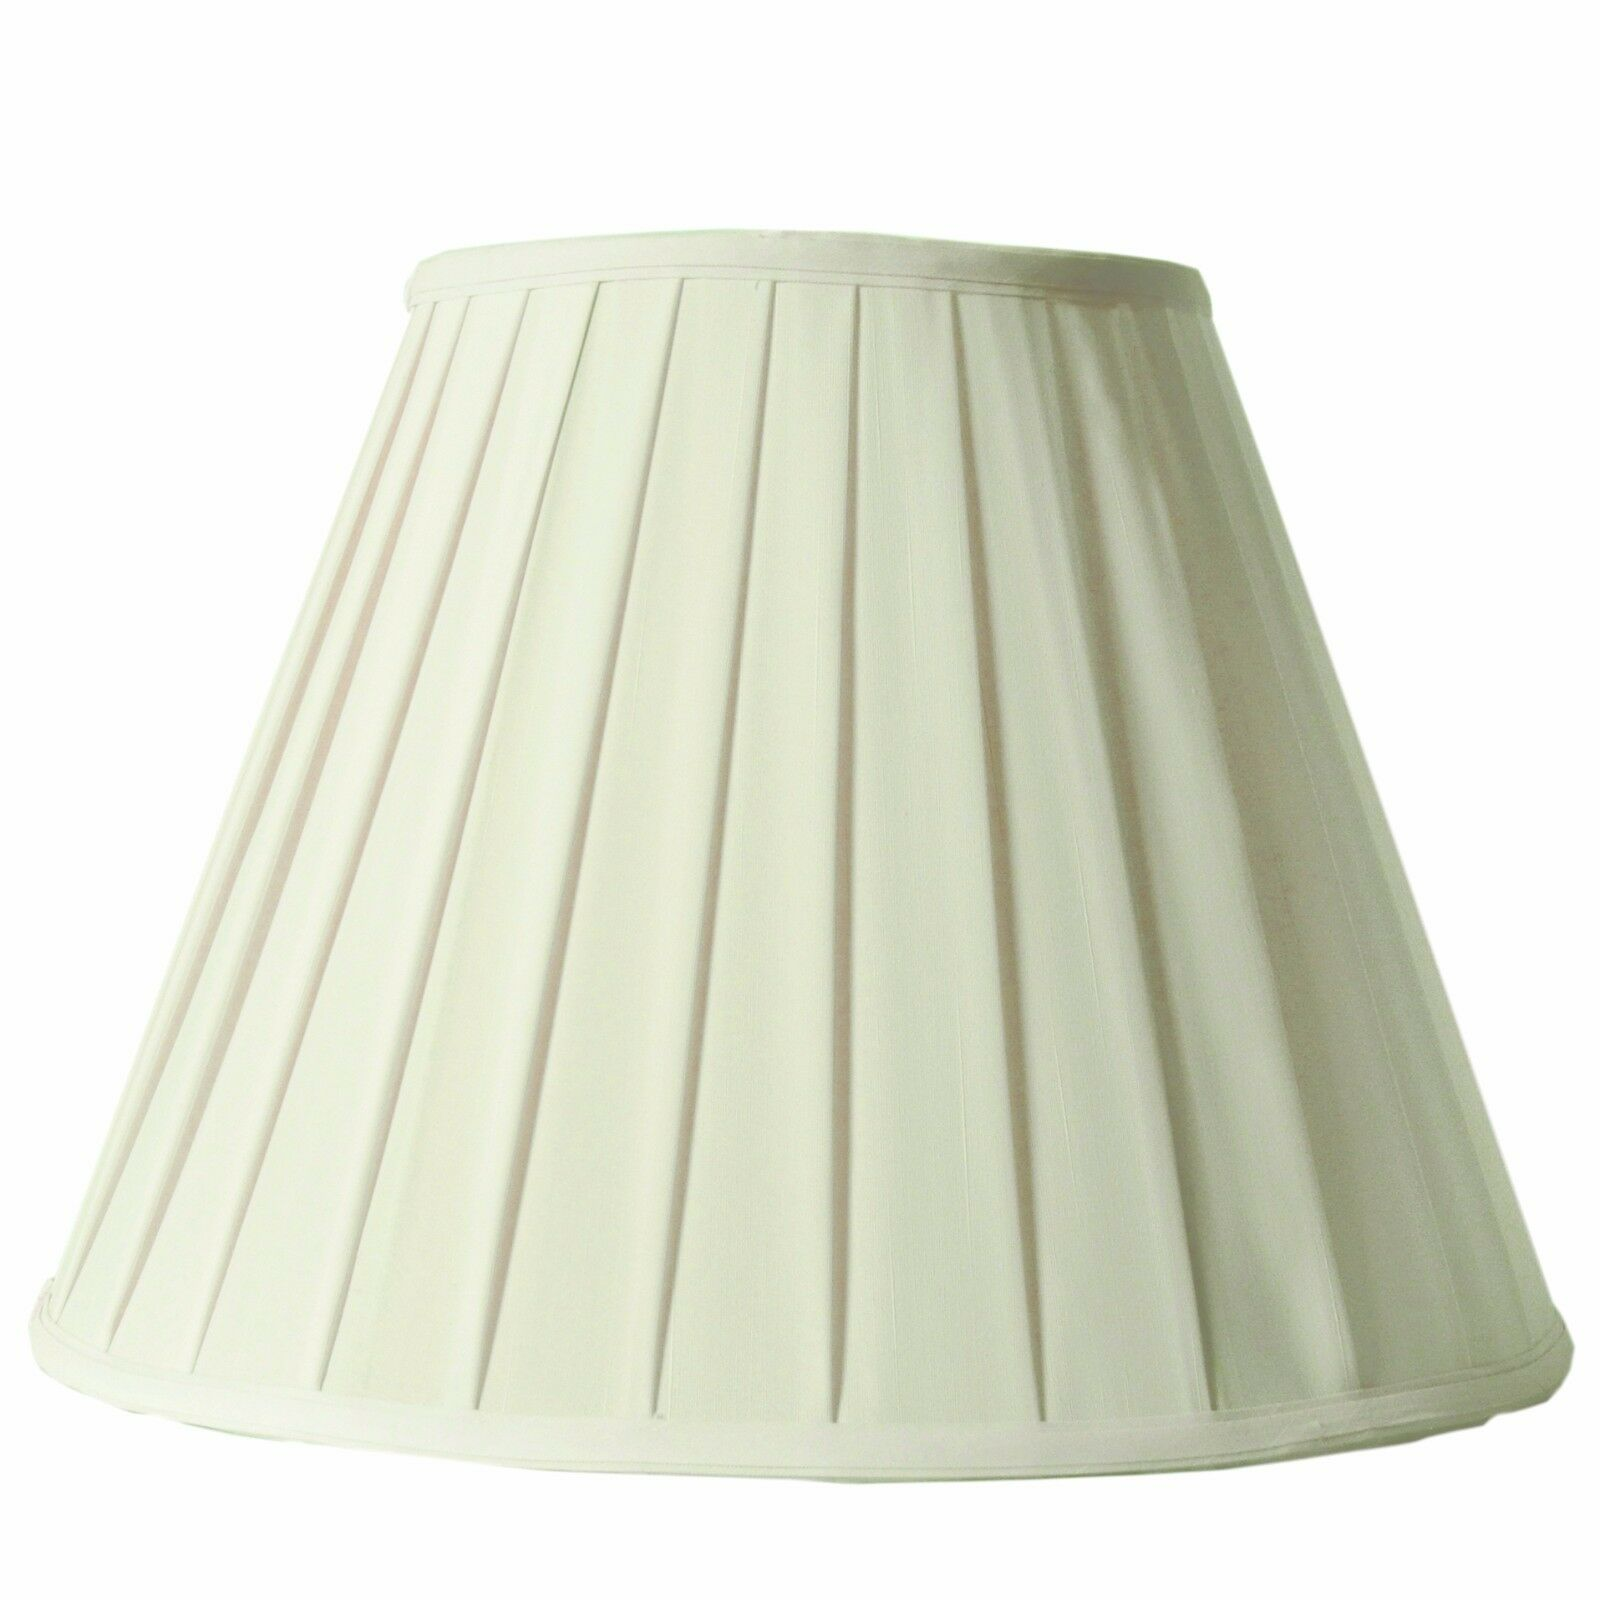 Hand Made Cream Round Box Pleat Lamp Shade for Table Lamp 8x